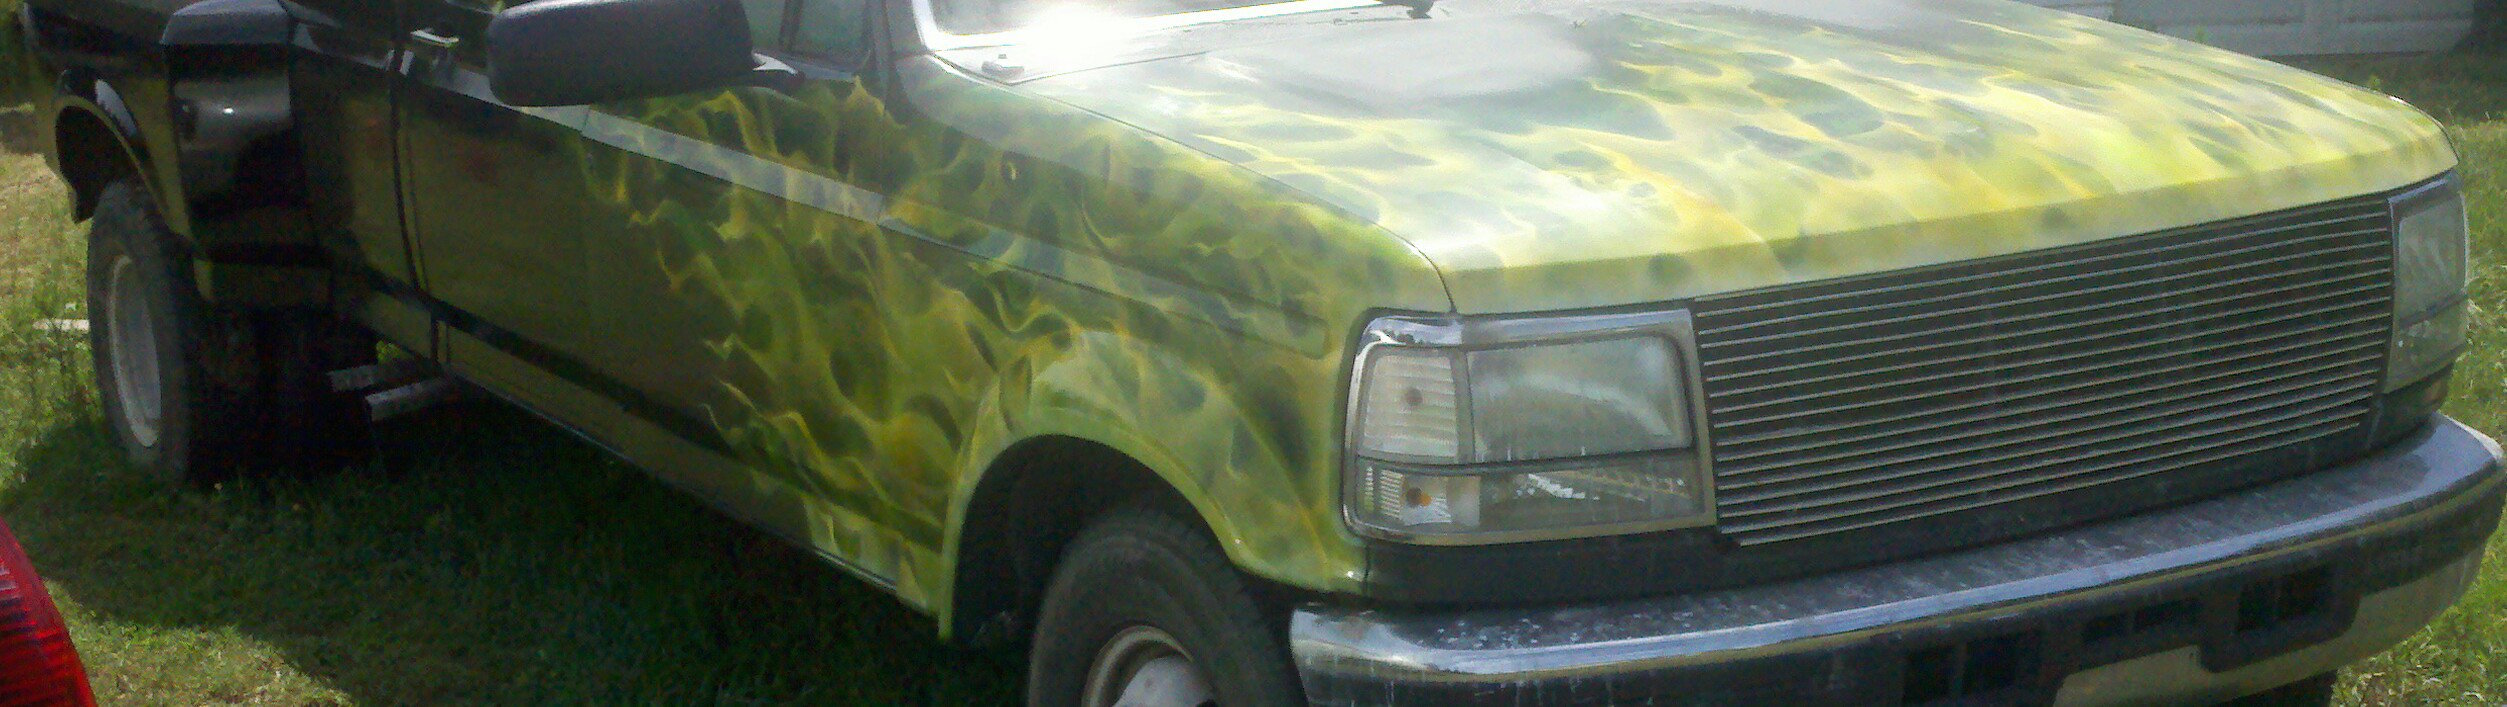 green candy pearls, yellow candy pearls, all make excellent flame paint job graphics.